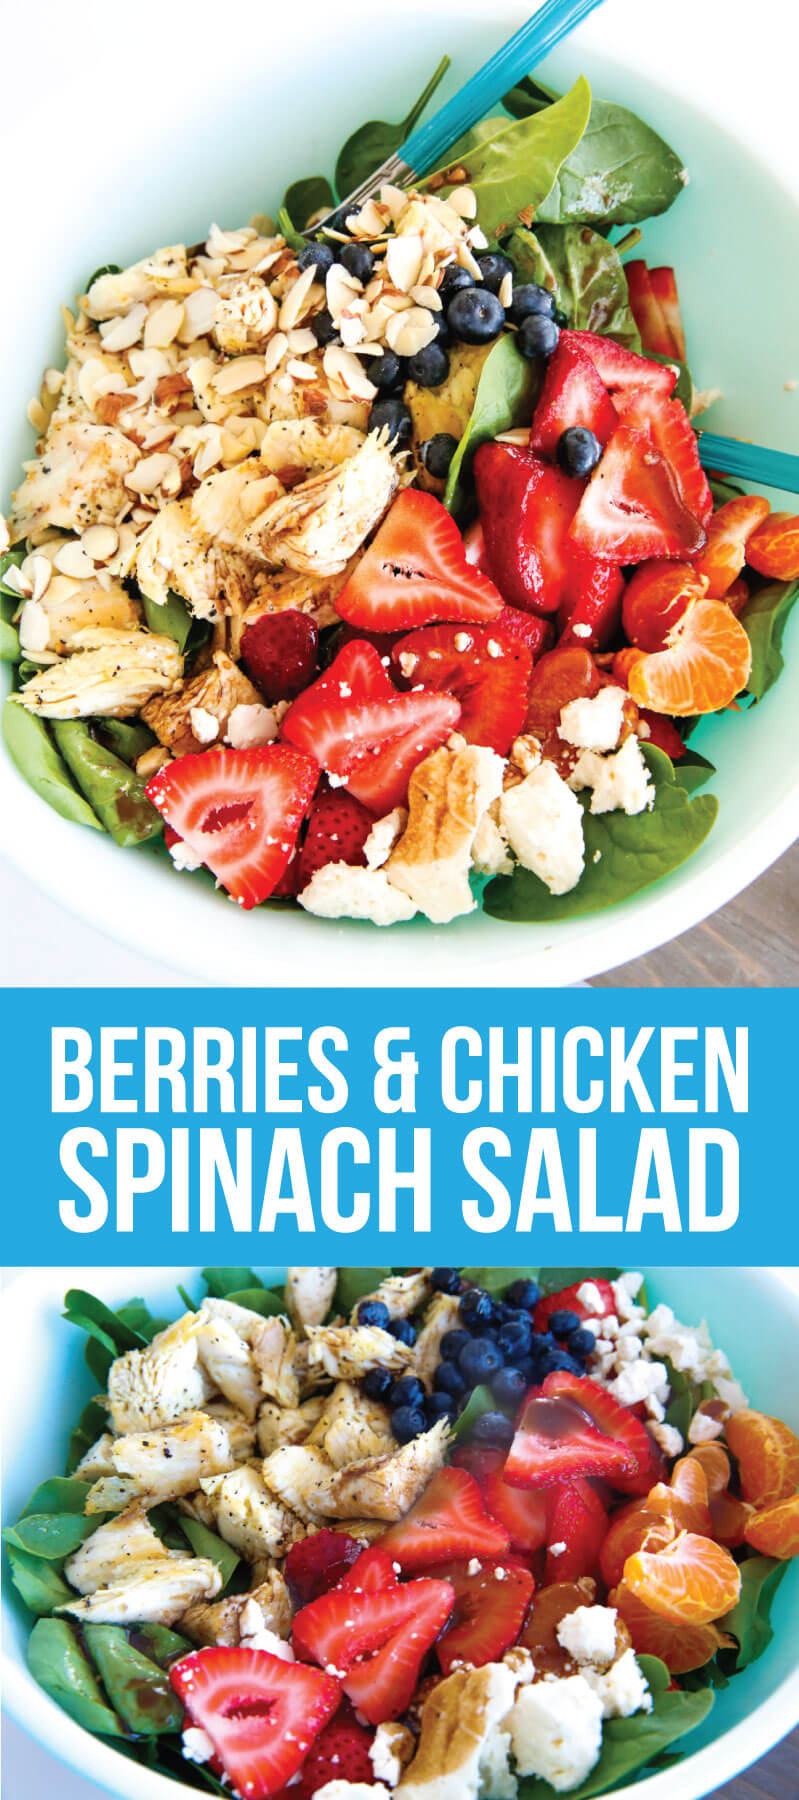 Berries and Chicken Spinach Salad - a tasty, healthy salad that is super easy to make. from www.thirtyhandmadedays.com